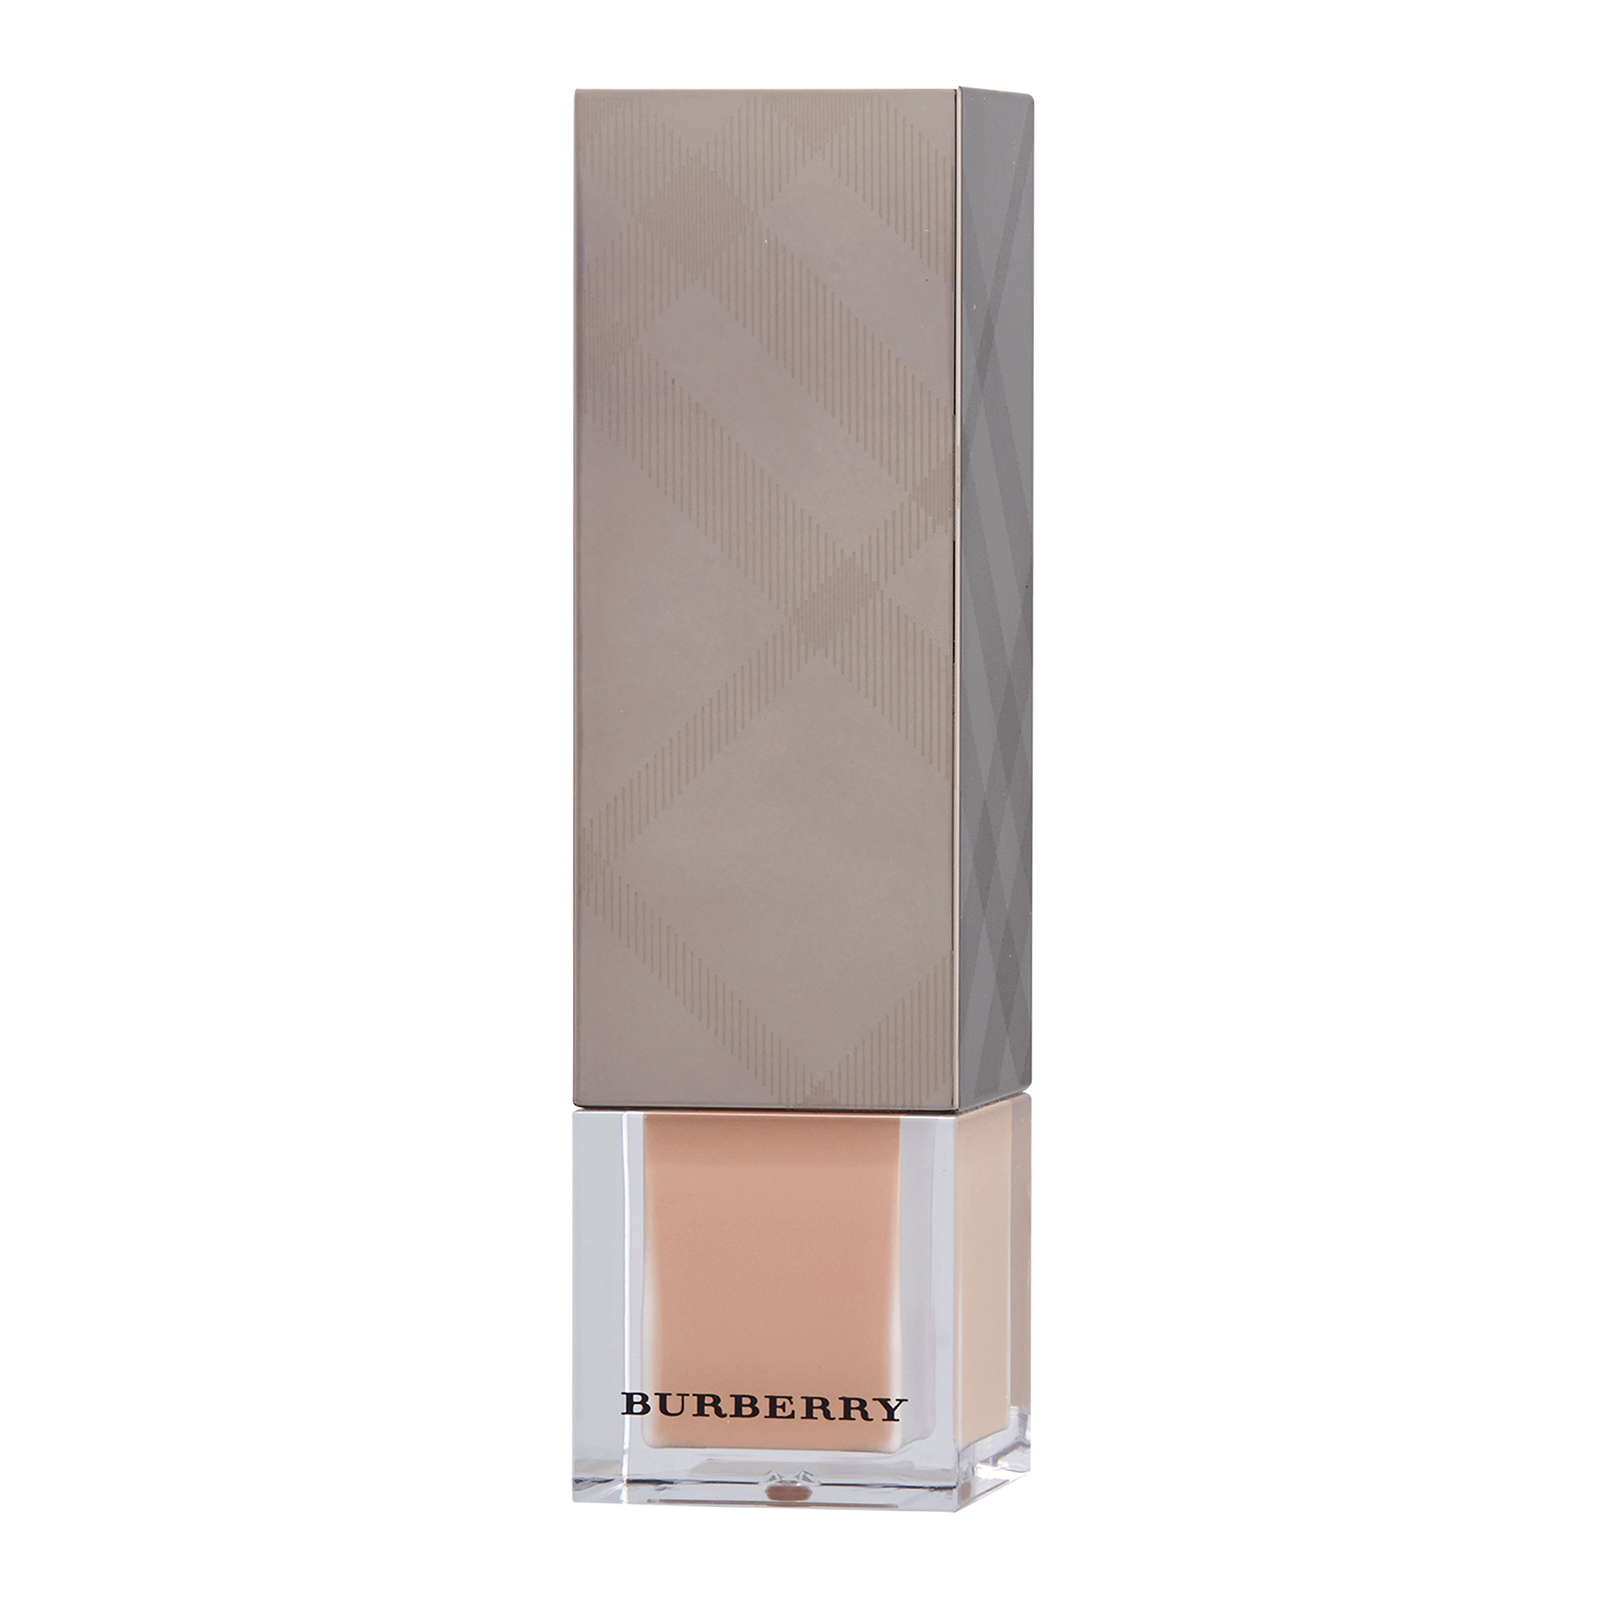 Burberry Fresh Glow Foundation SPF15 - PA+++ No. 20 Ochre, 1oz, 30ml